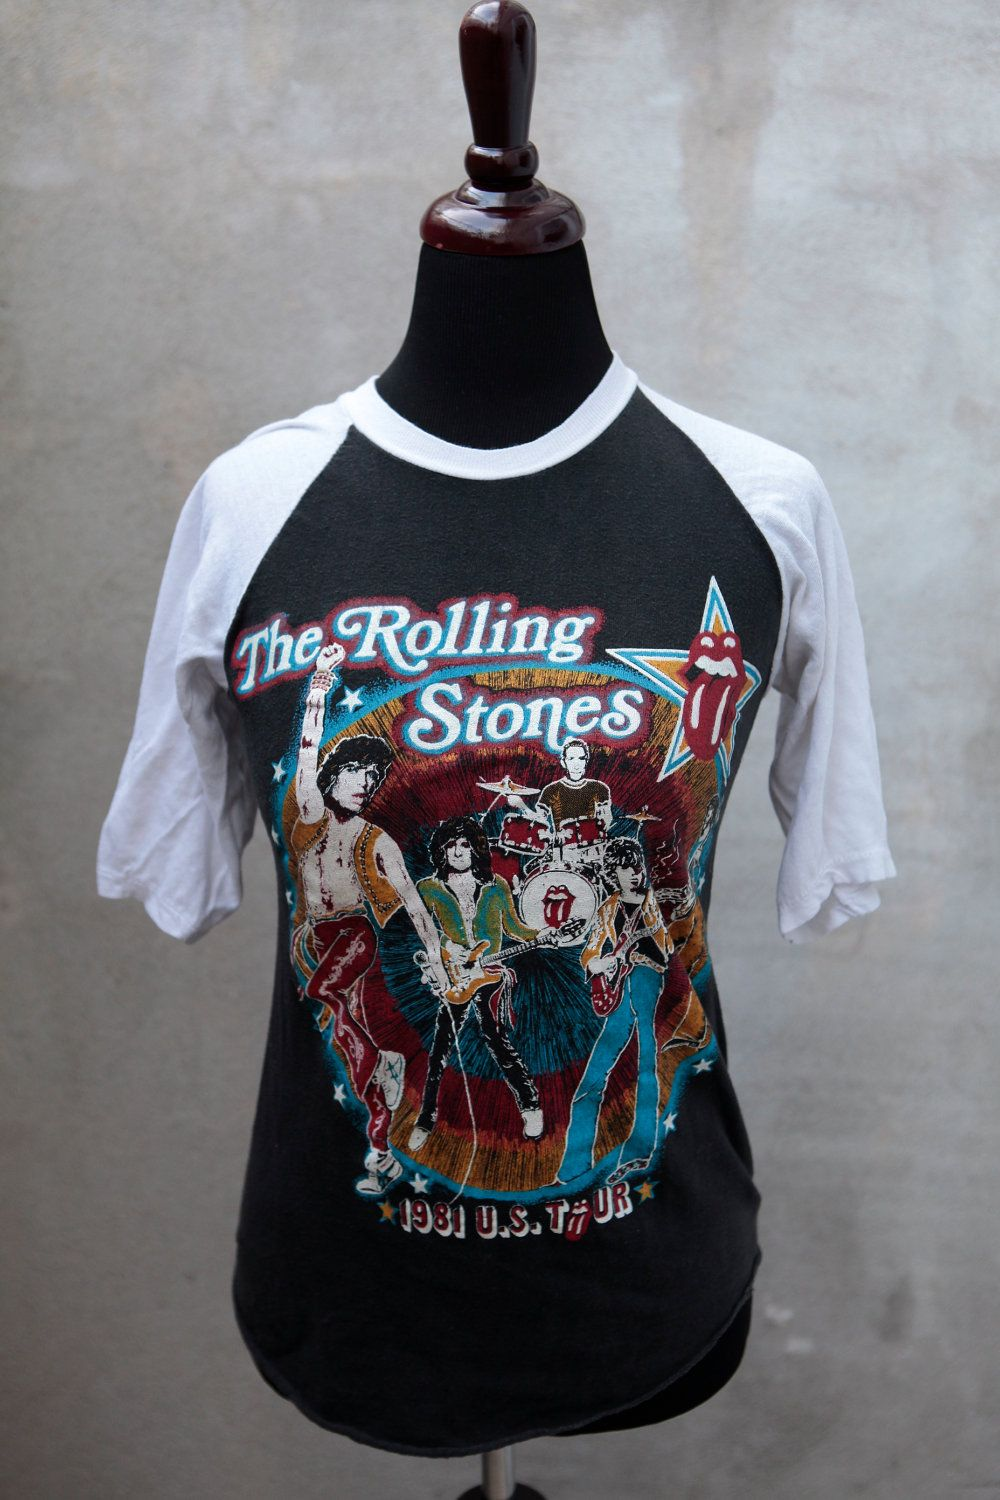 rolling stones tattoo 1981 tour shirt stone etsy shirts reserved tattoos sold extra